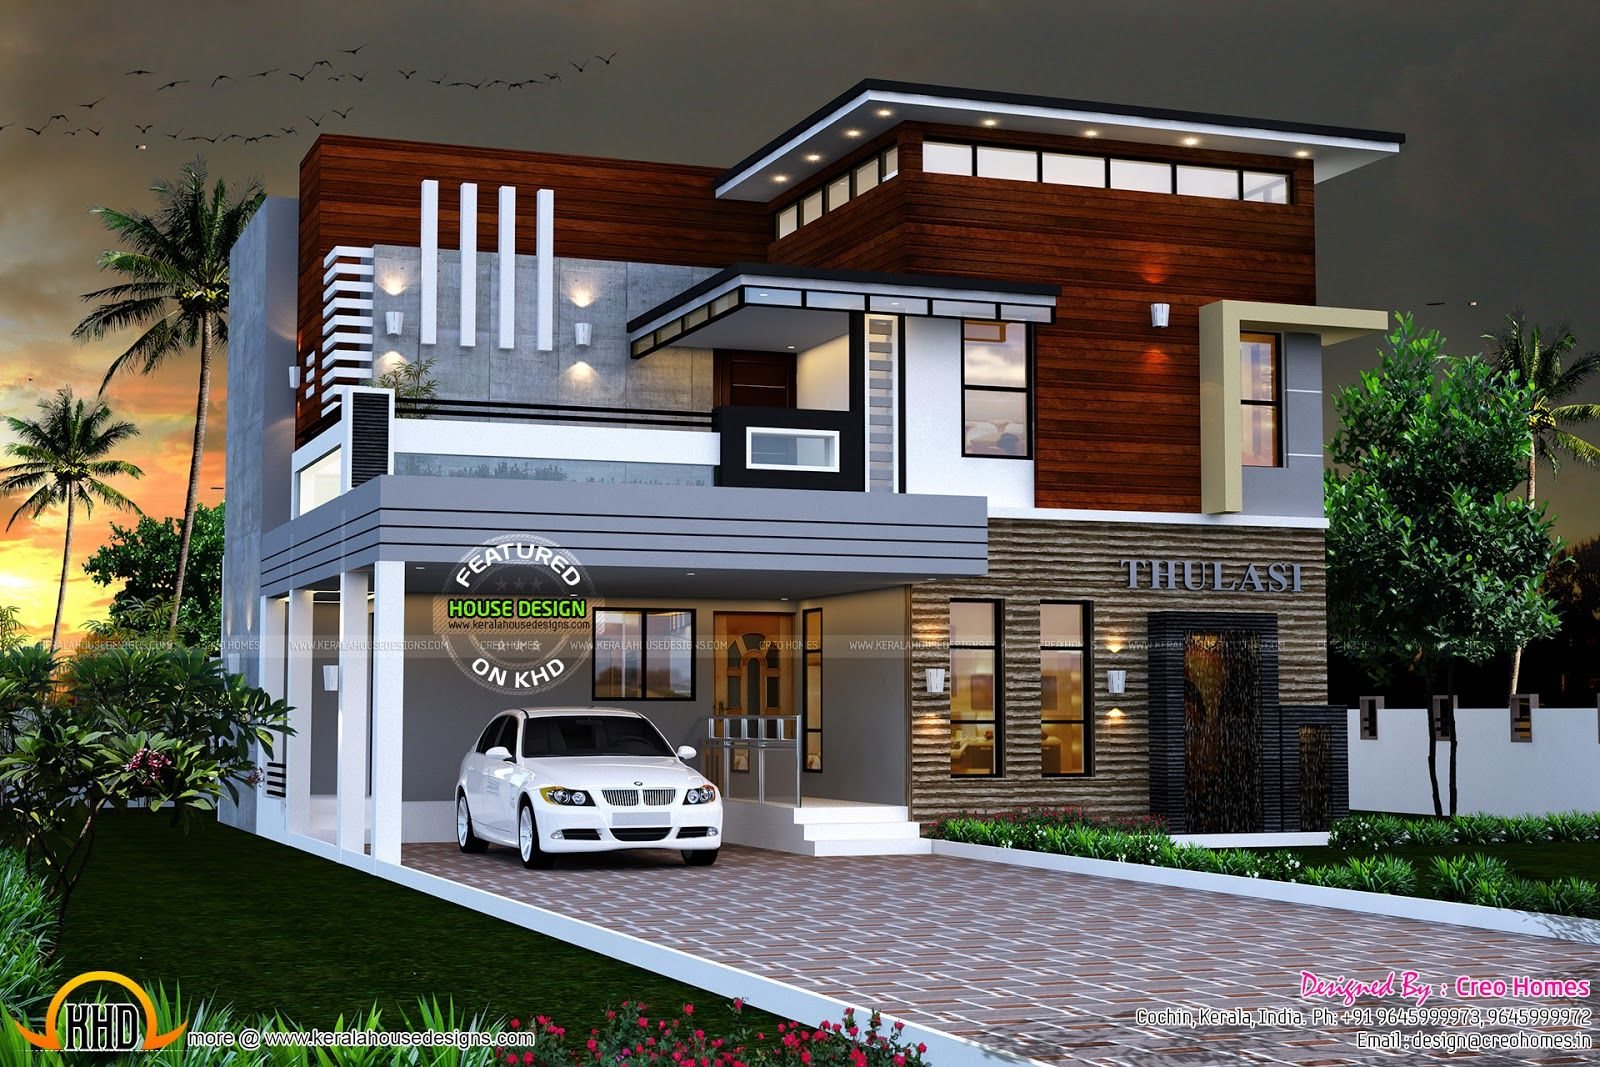 Eterior Design Modern Small House Architecture Building Plan Home Design Kerala House Plans Home